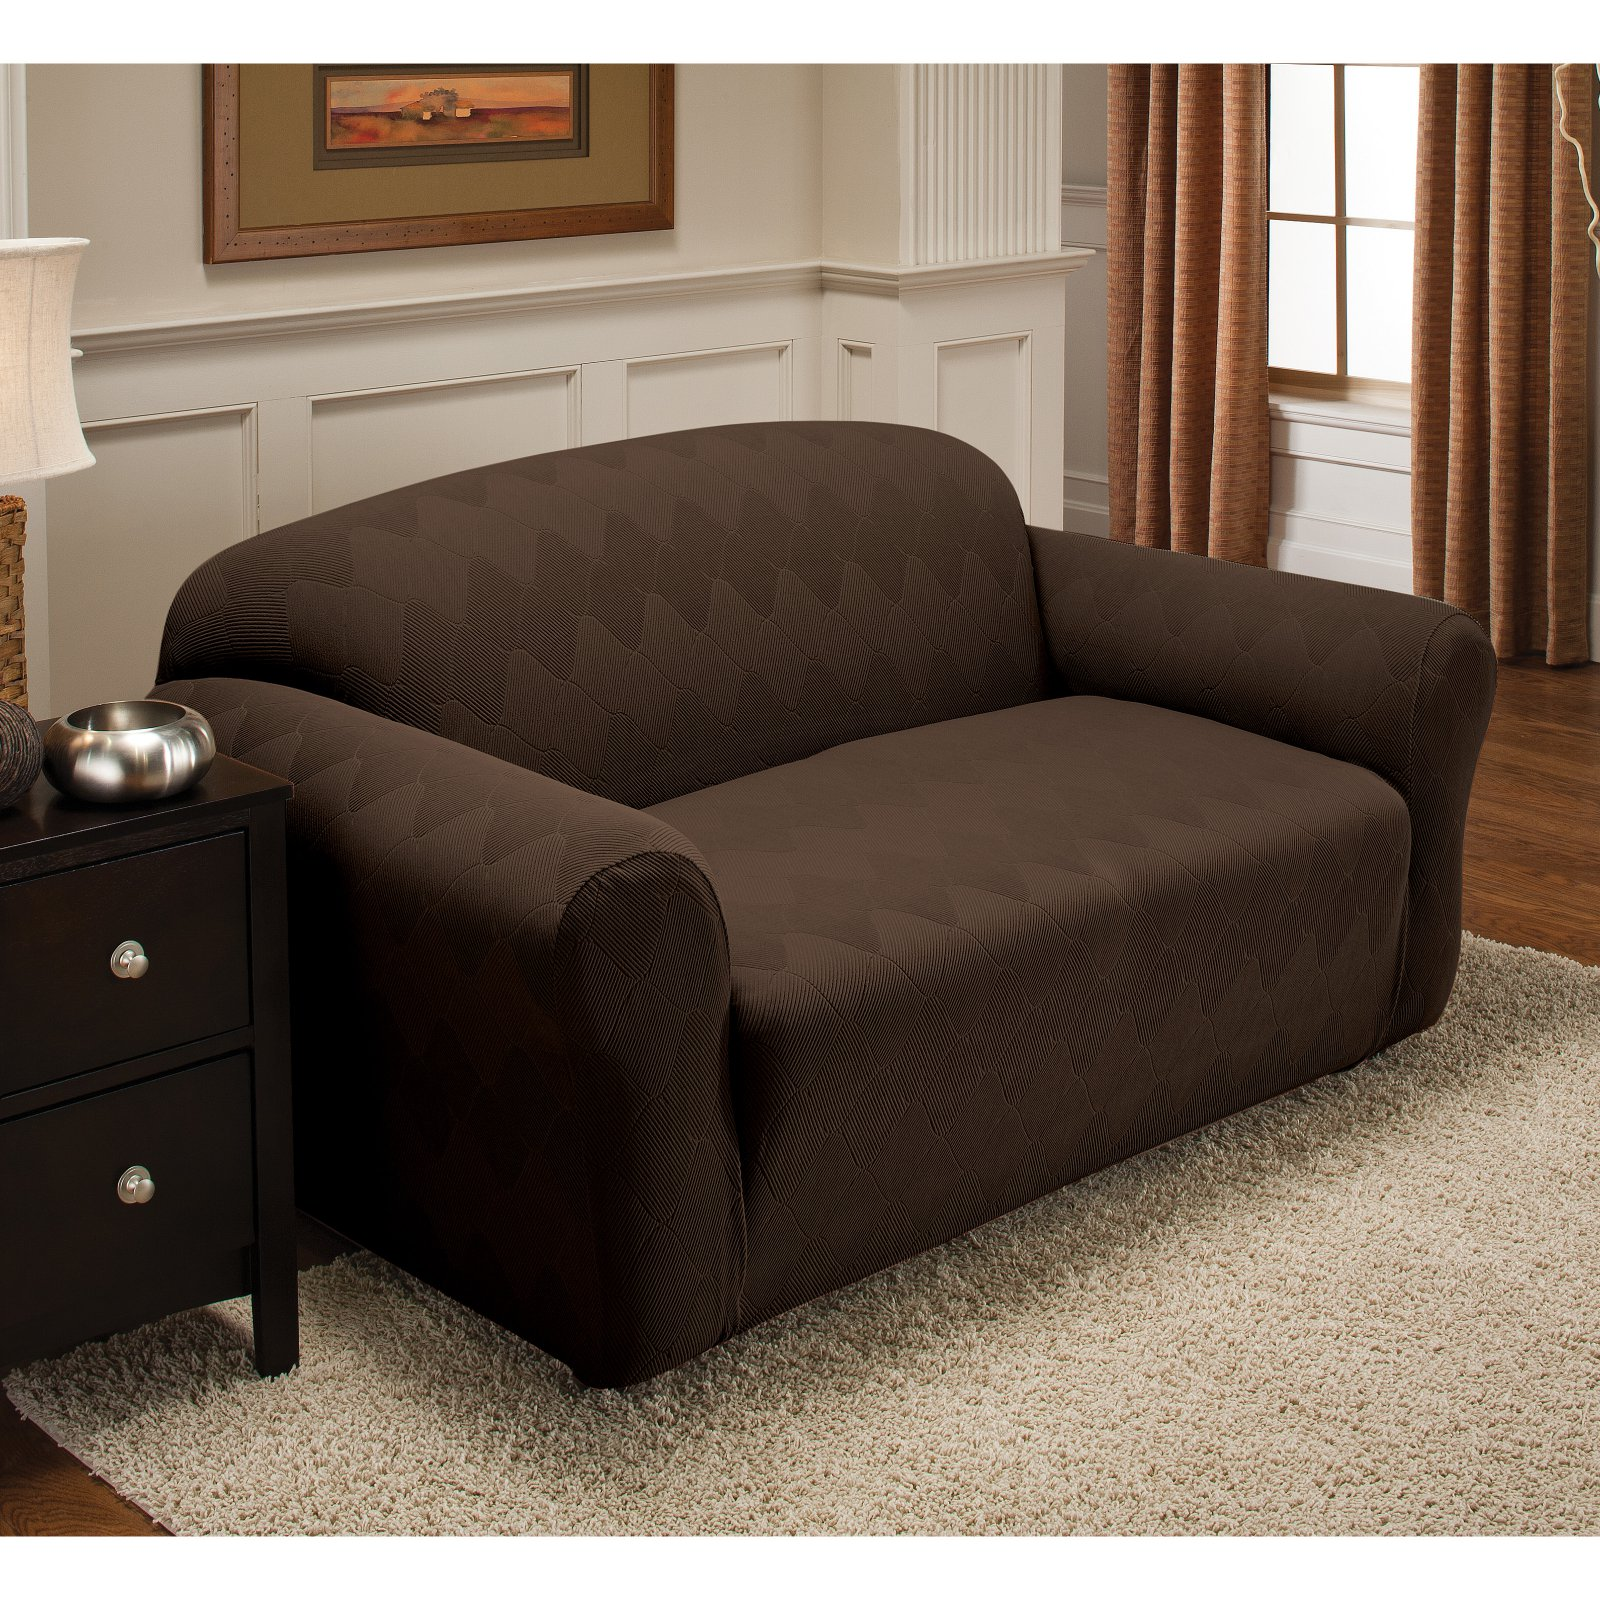 Stretch Sensations Stretch Optics Slipcover Loveseat Couch Cover